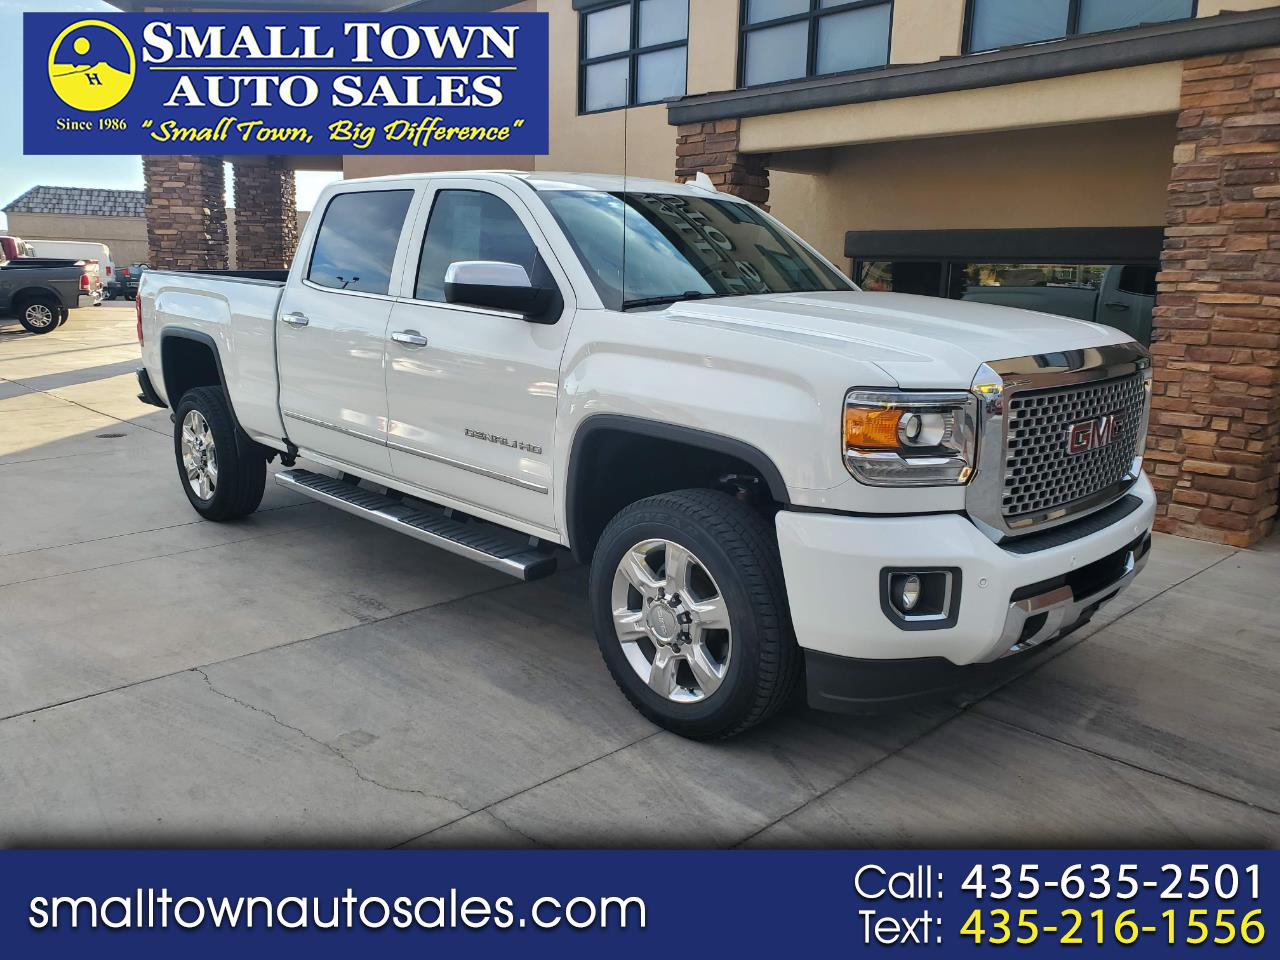 Small Town Auto >> Used Cars For Sale Hurricane Ut 84737 Small Town Auto Sales